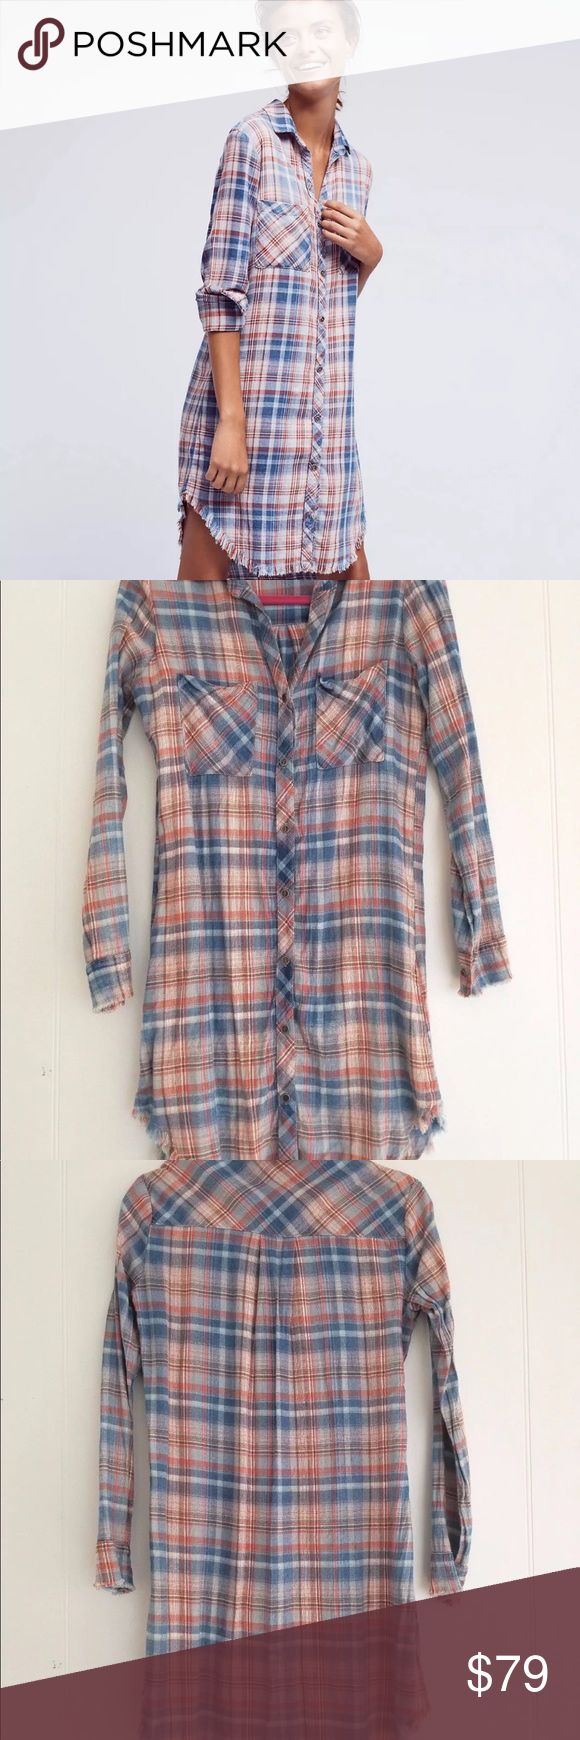 EUC-anthropologie cloth & stone plaid shirt dress EUC- Anthropologie Cloth & Stone soft fringe plaid button down flannel shirt dress. Size xs Anthropologie Dresses Long Sleeve